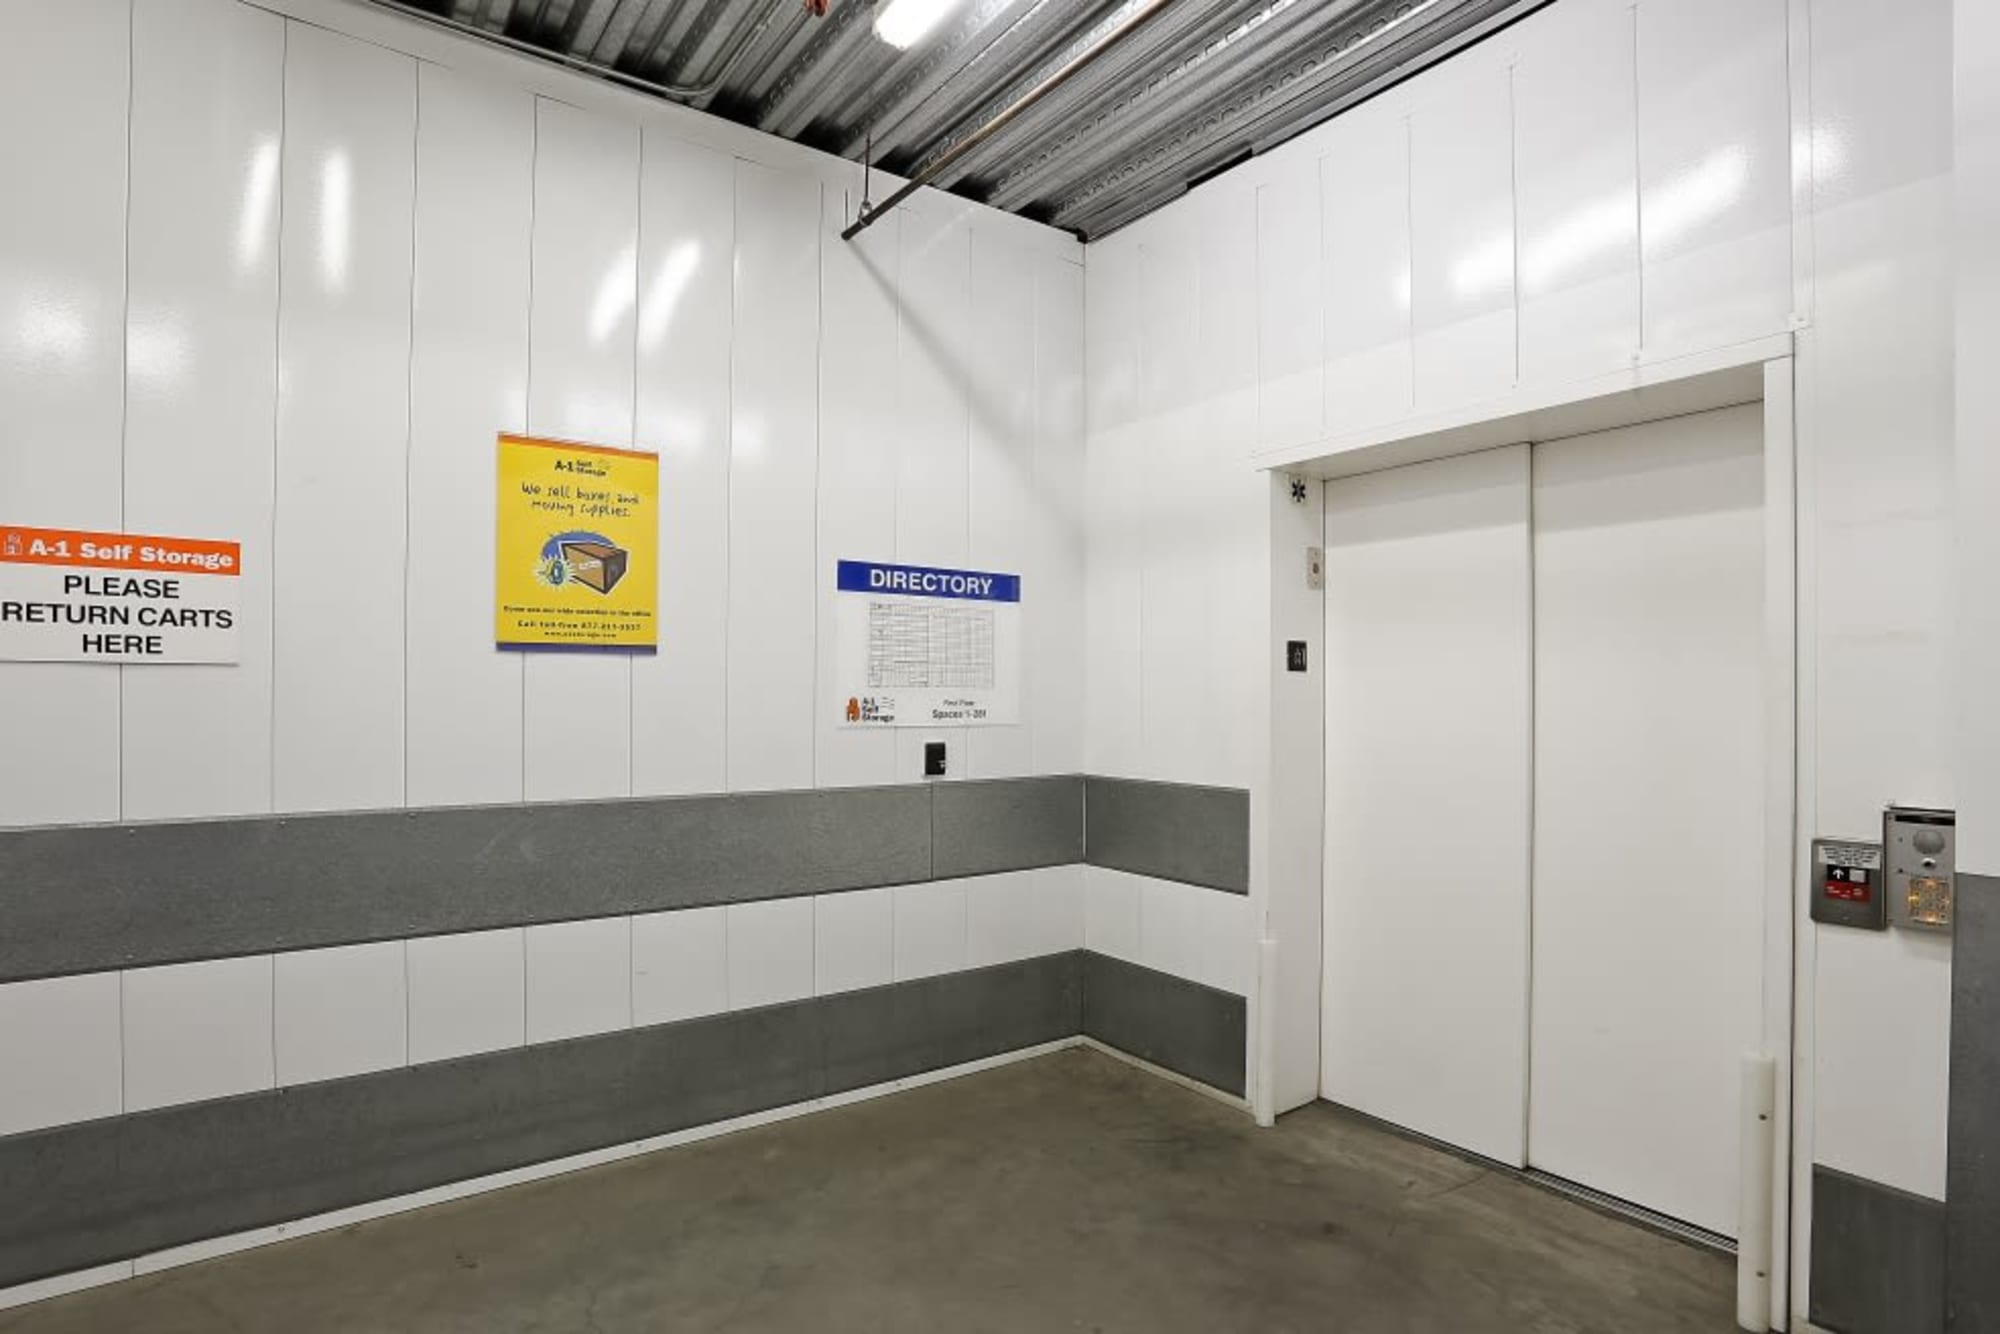 The elevator at A-1 Self Storage in San Diego, California